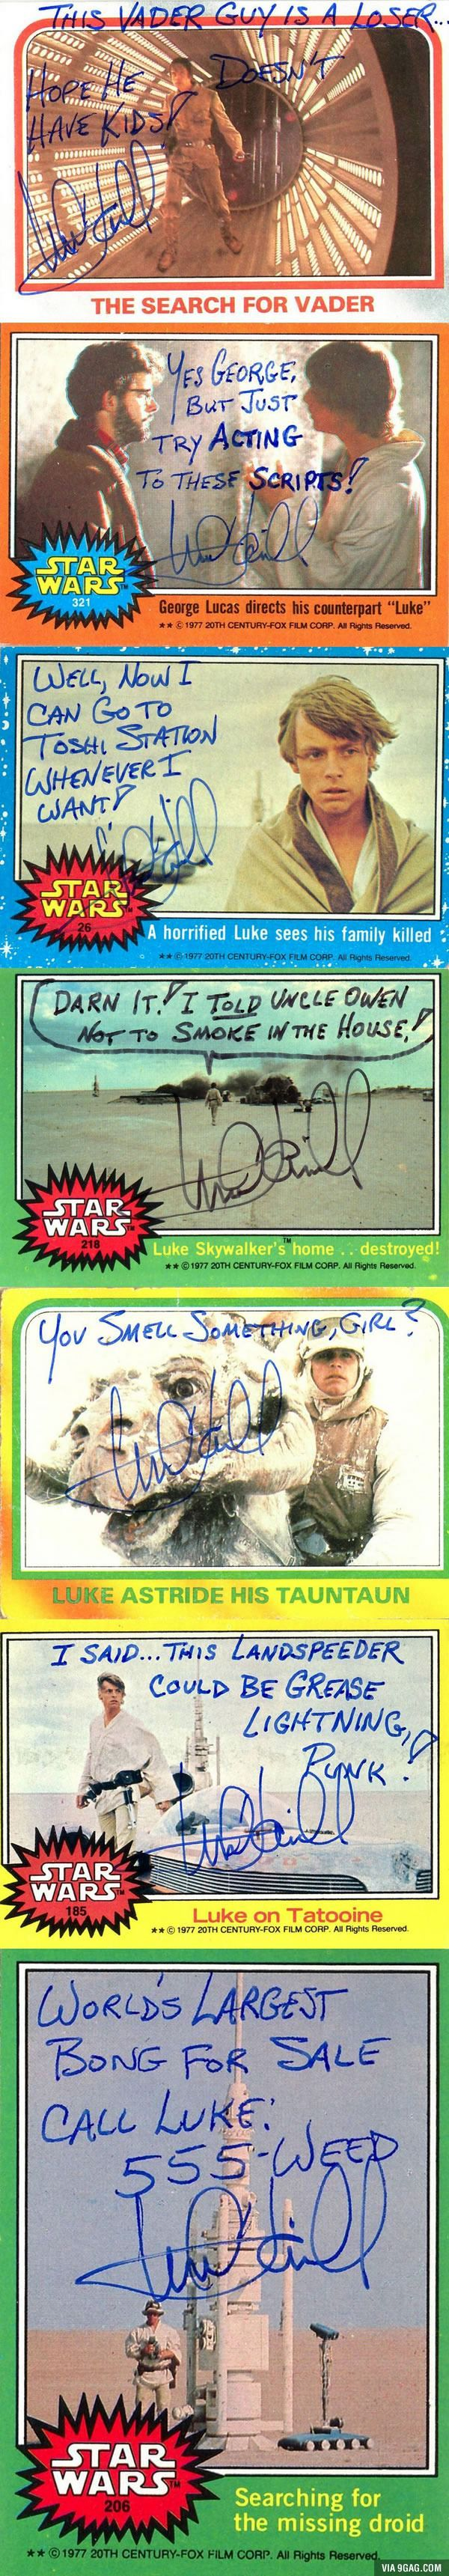 Mark Hamill Autographs Are Apparently Hilarious. - www.facebook.com/groups/humor9